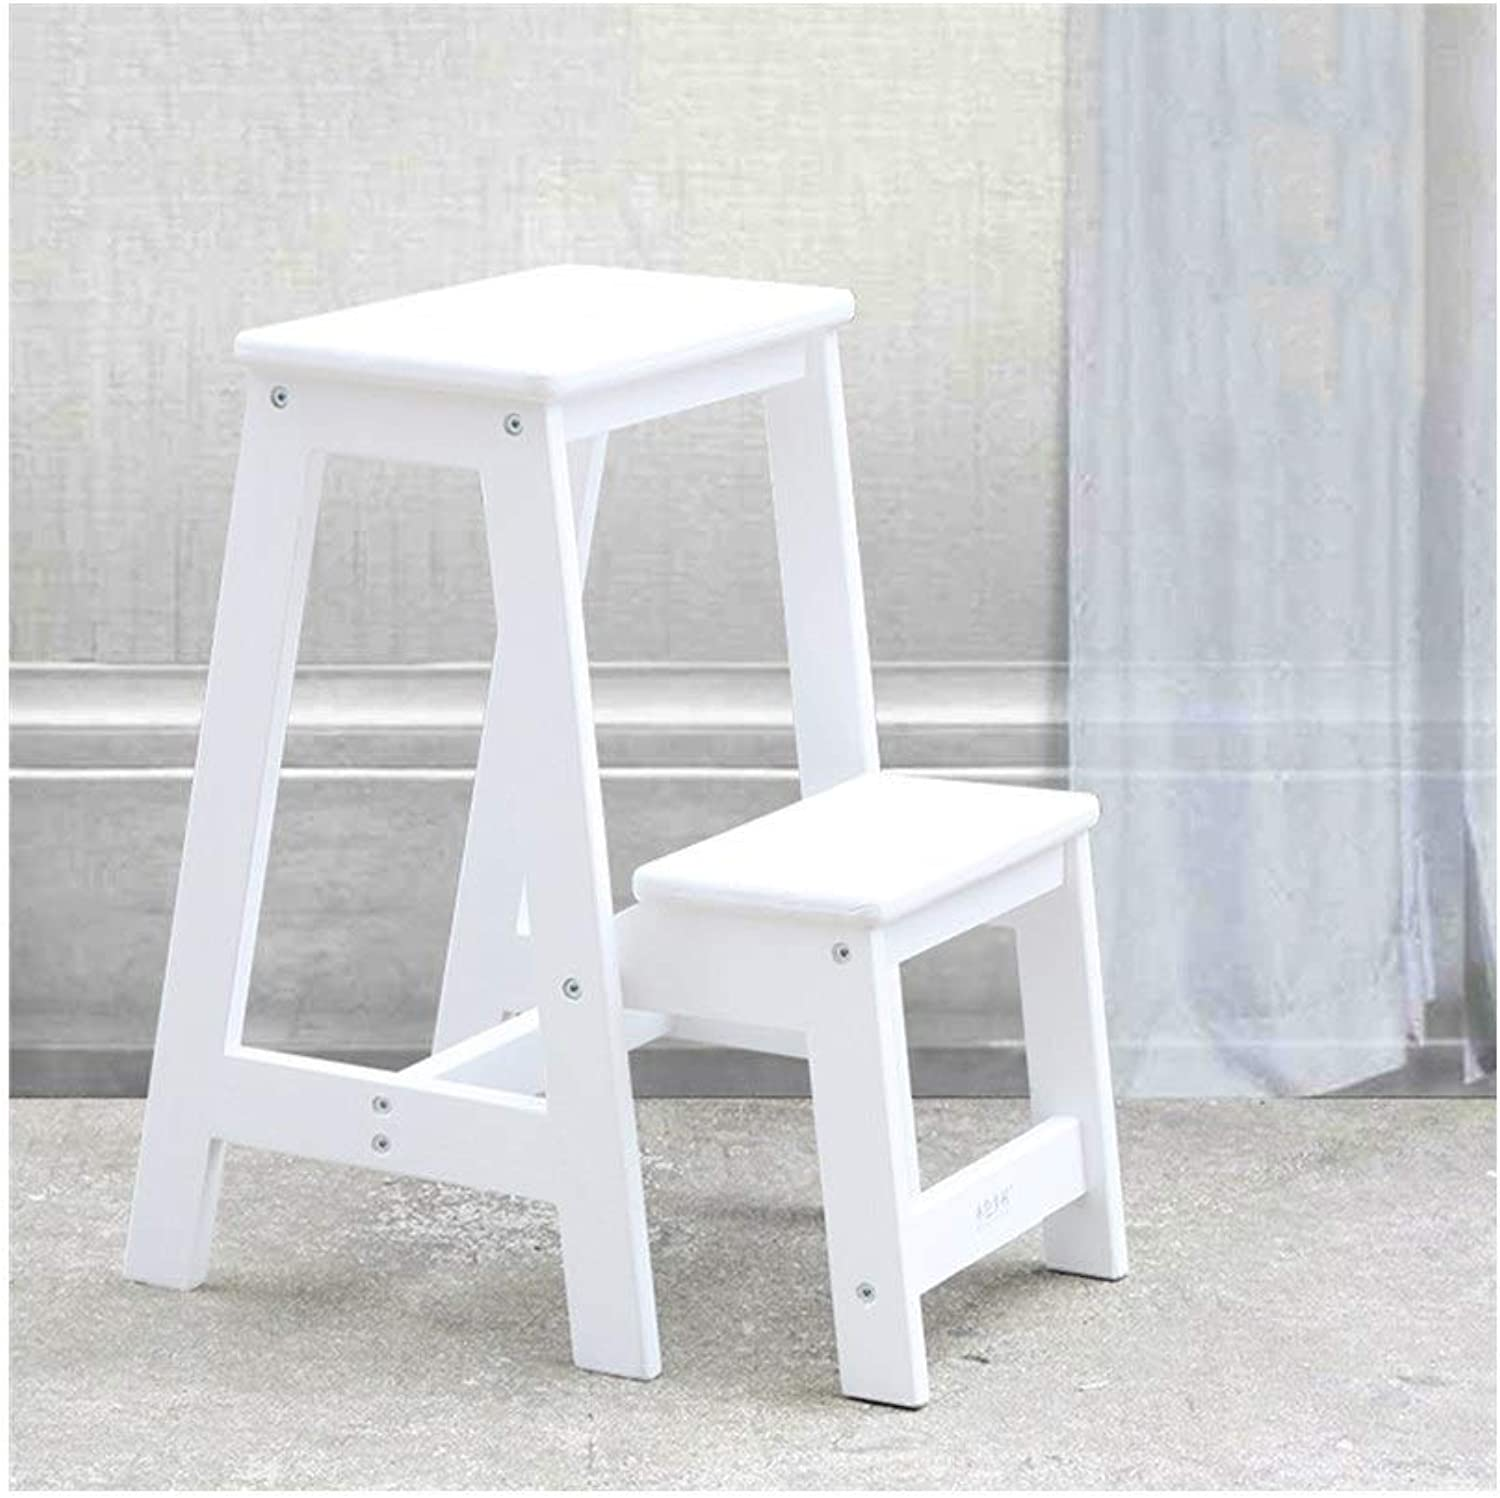 LXJYMX Home Folding Wooden Ladder, Multi-Purpose Staircase Chair, Ladder Stool, Indoor Ladder, Home Kitchen Stool. Climbing Ladder (color   White)